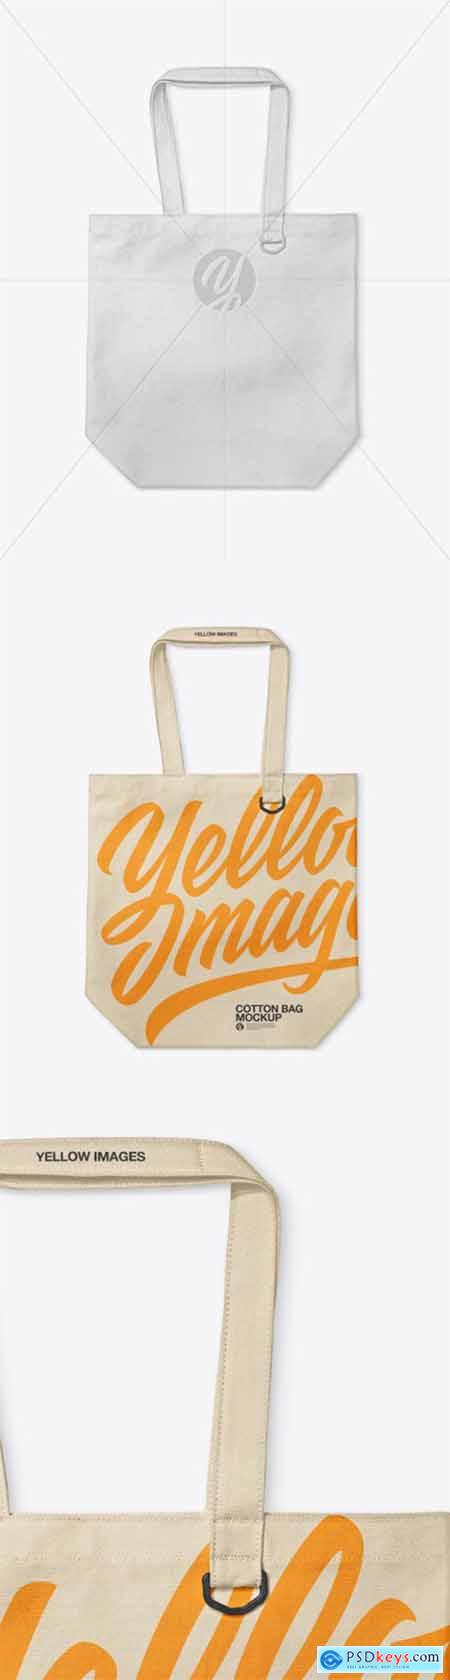 Cotton Bag Mockup 54376